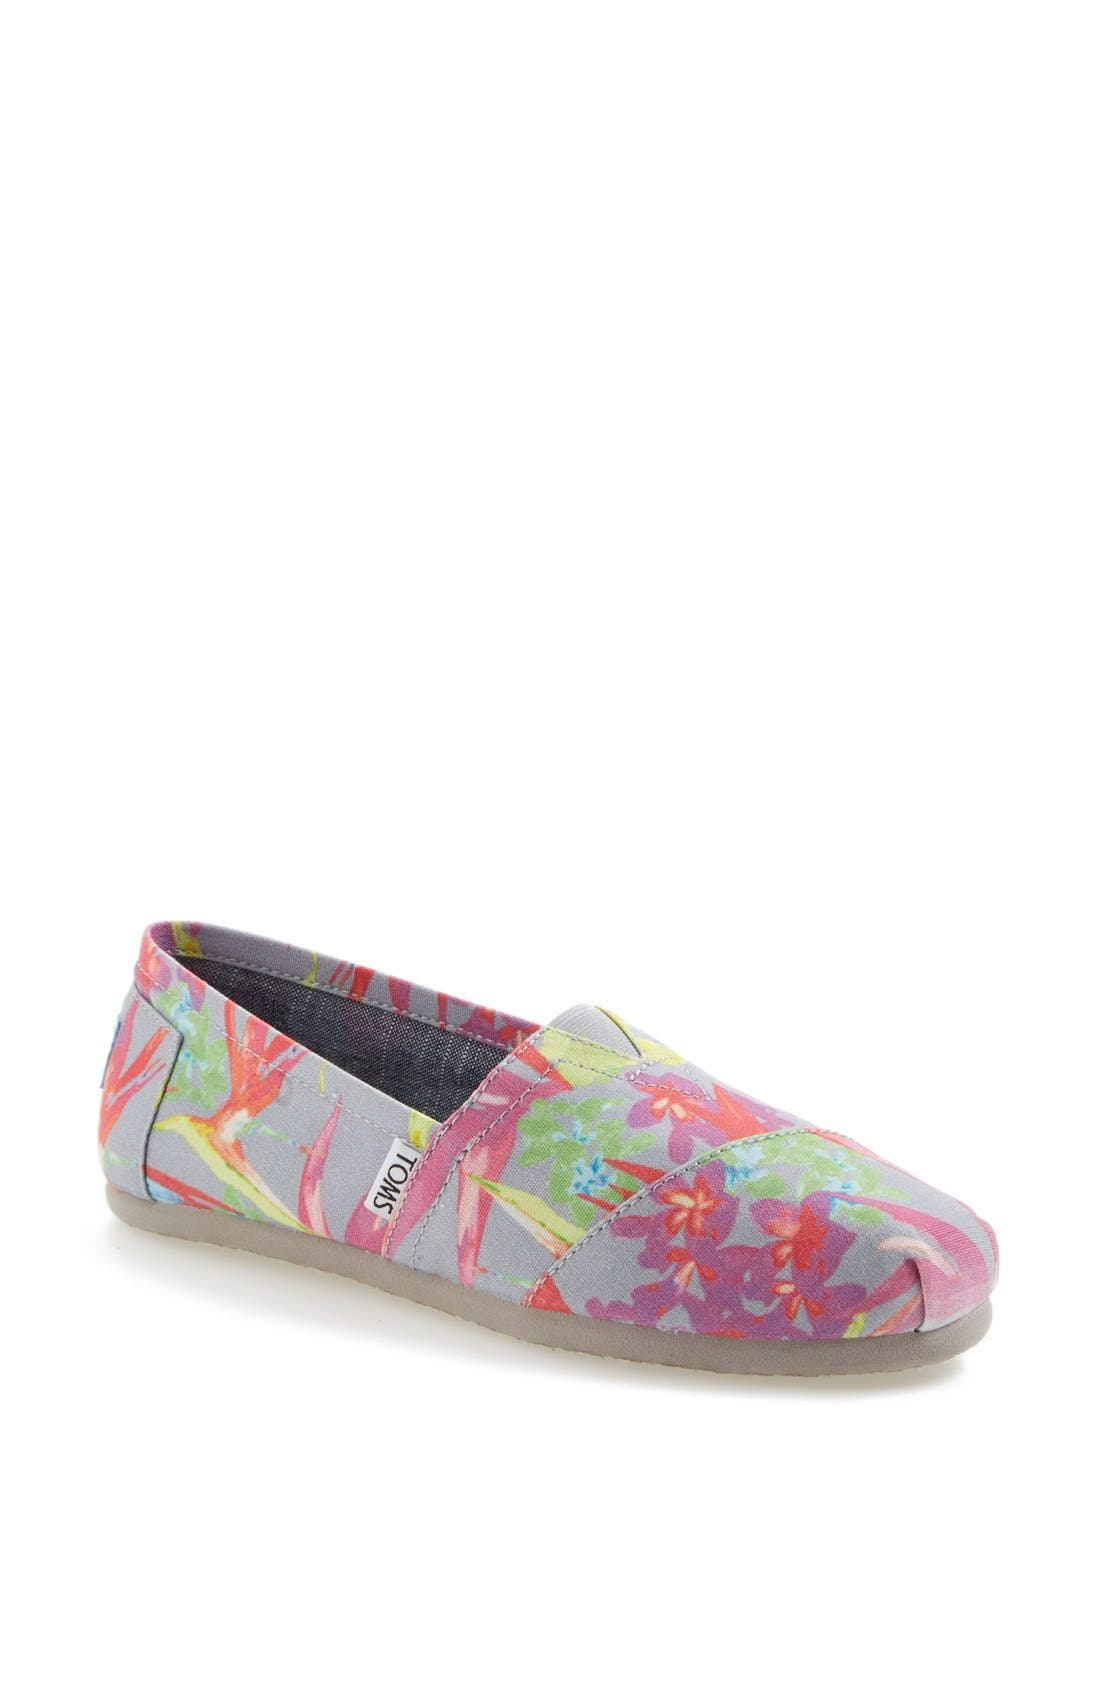 Main Image - TOMS 'Classic - Birds of Paradise' Slip-On (Women)